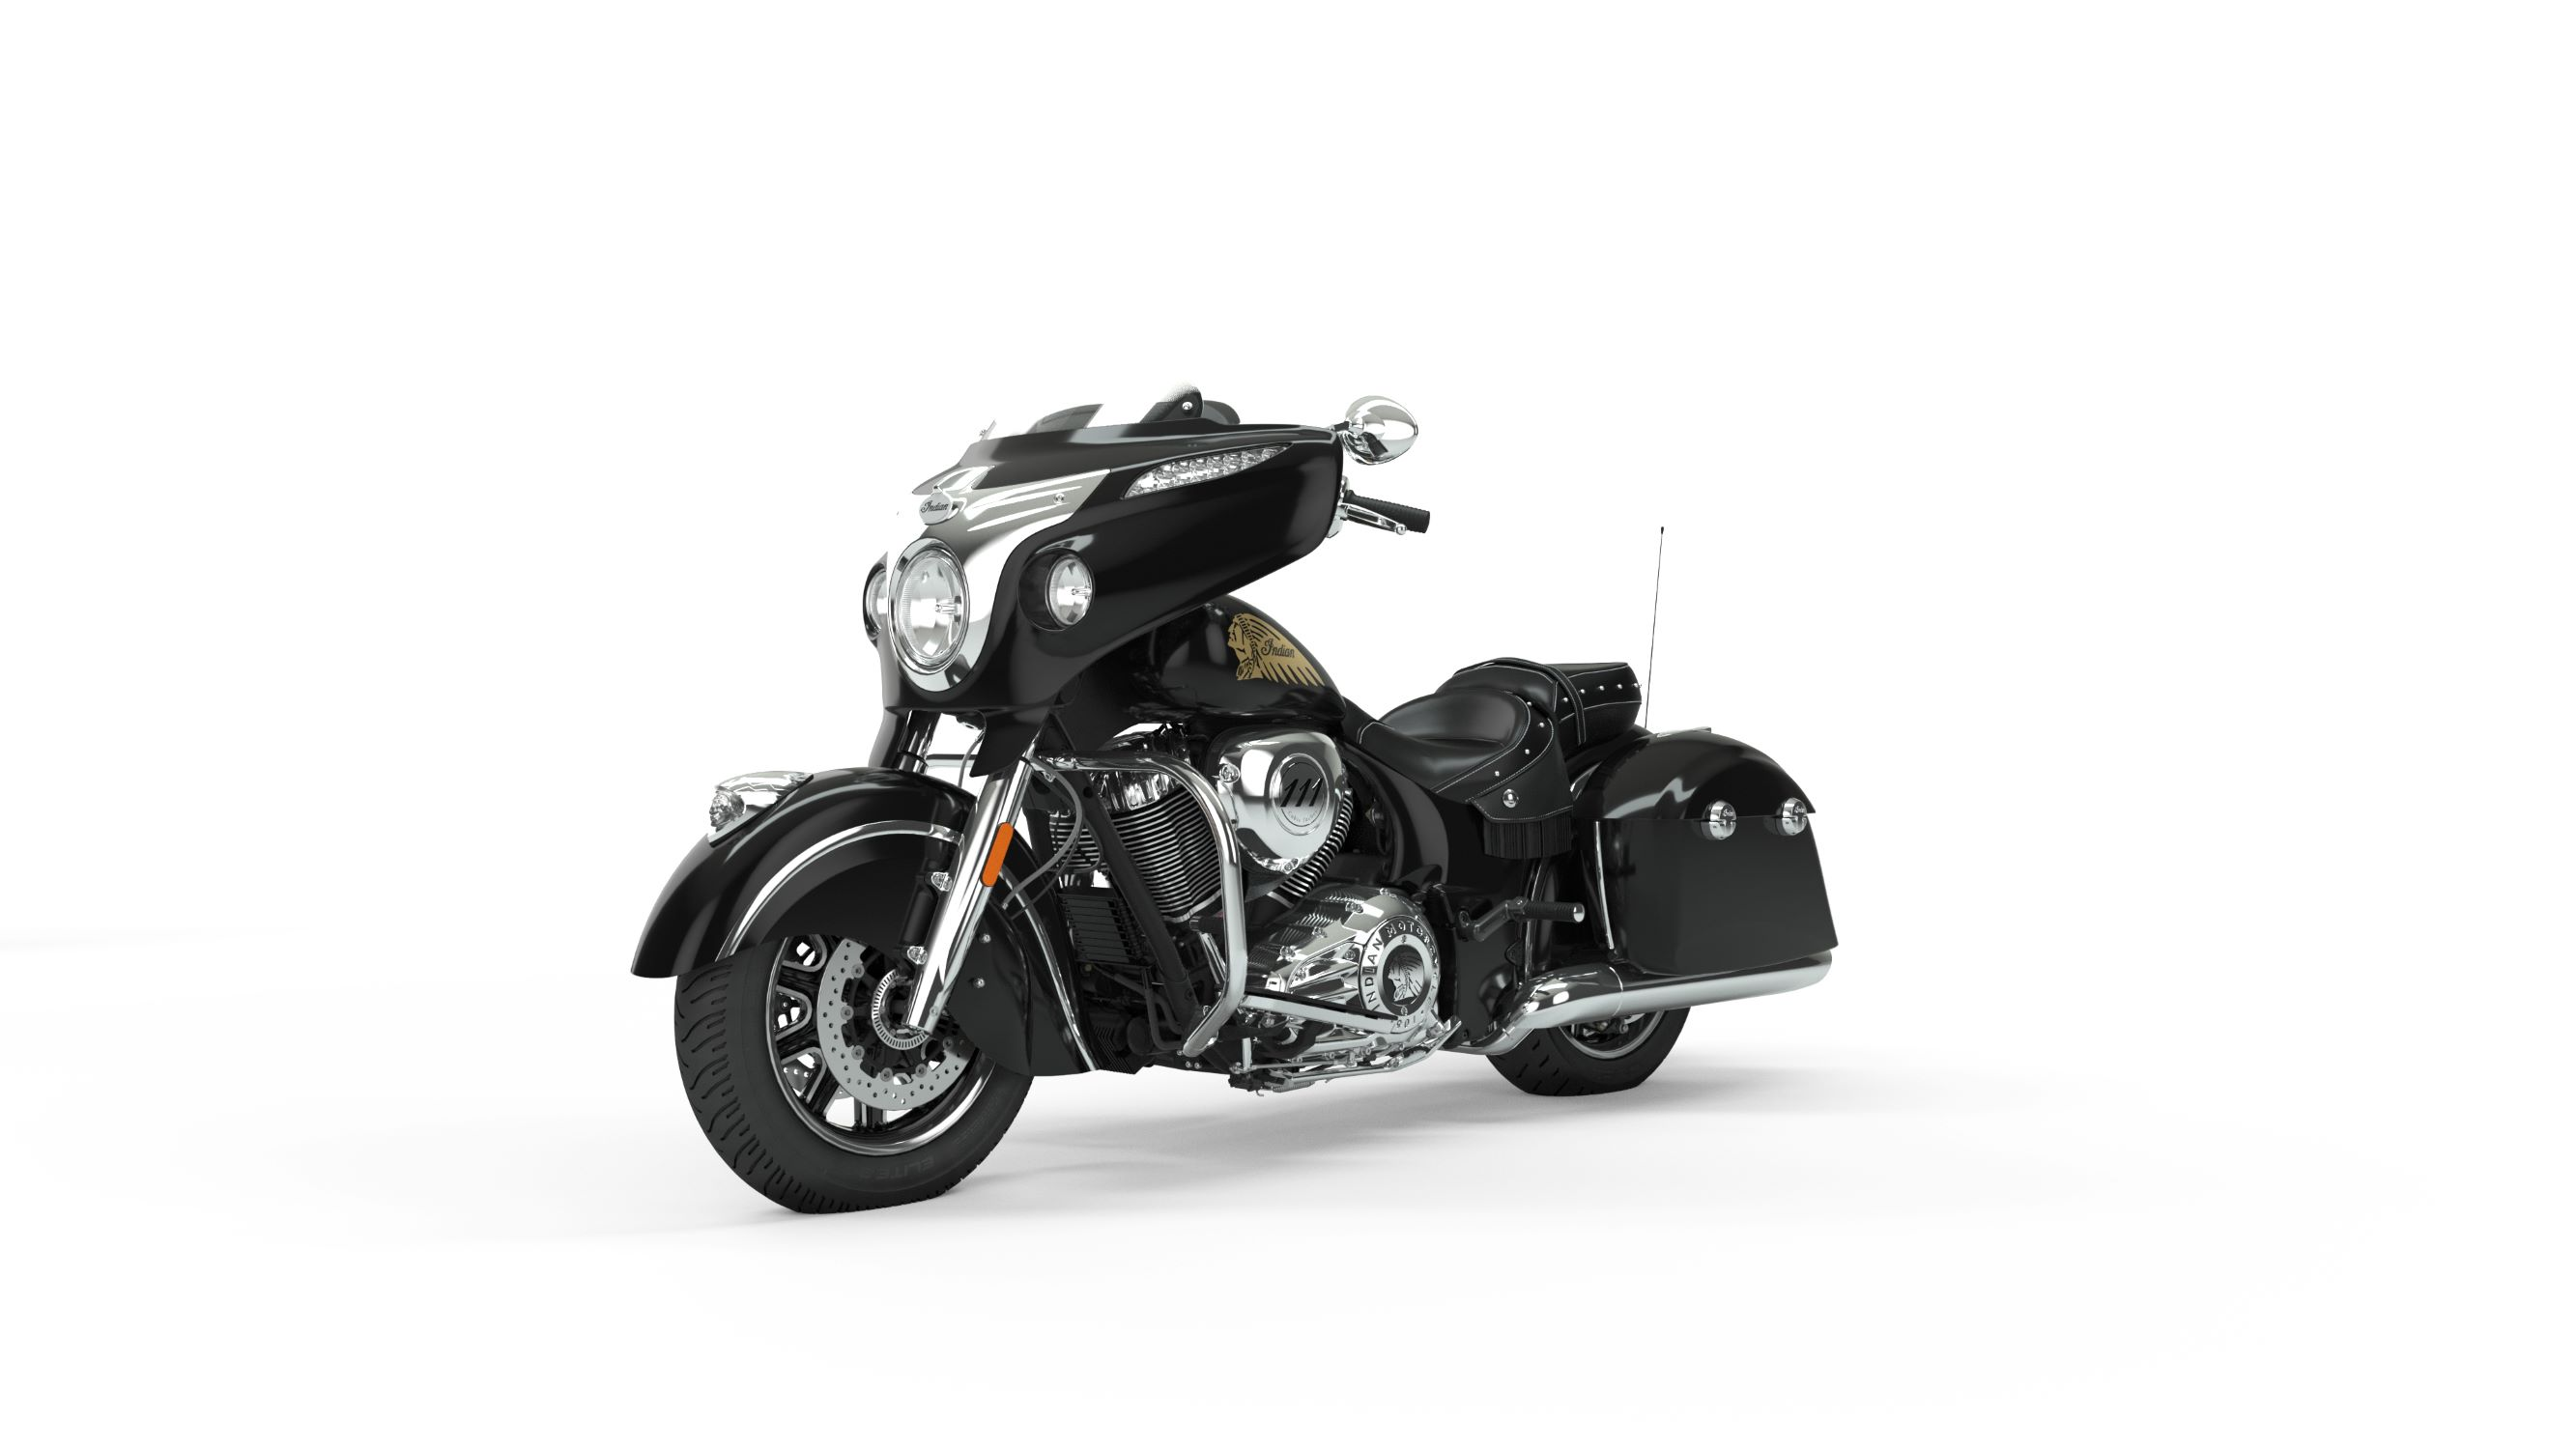 2019 Chieftain Classic Thunder Black Front Left 3Q